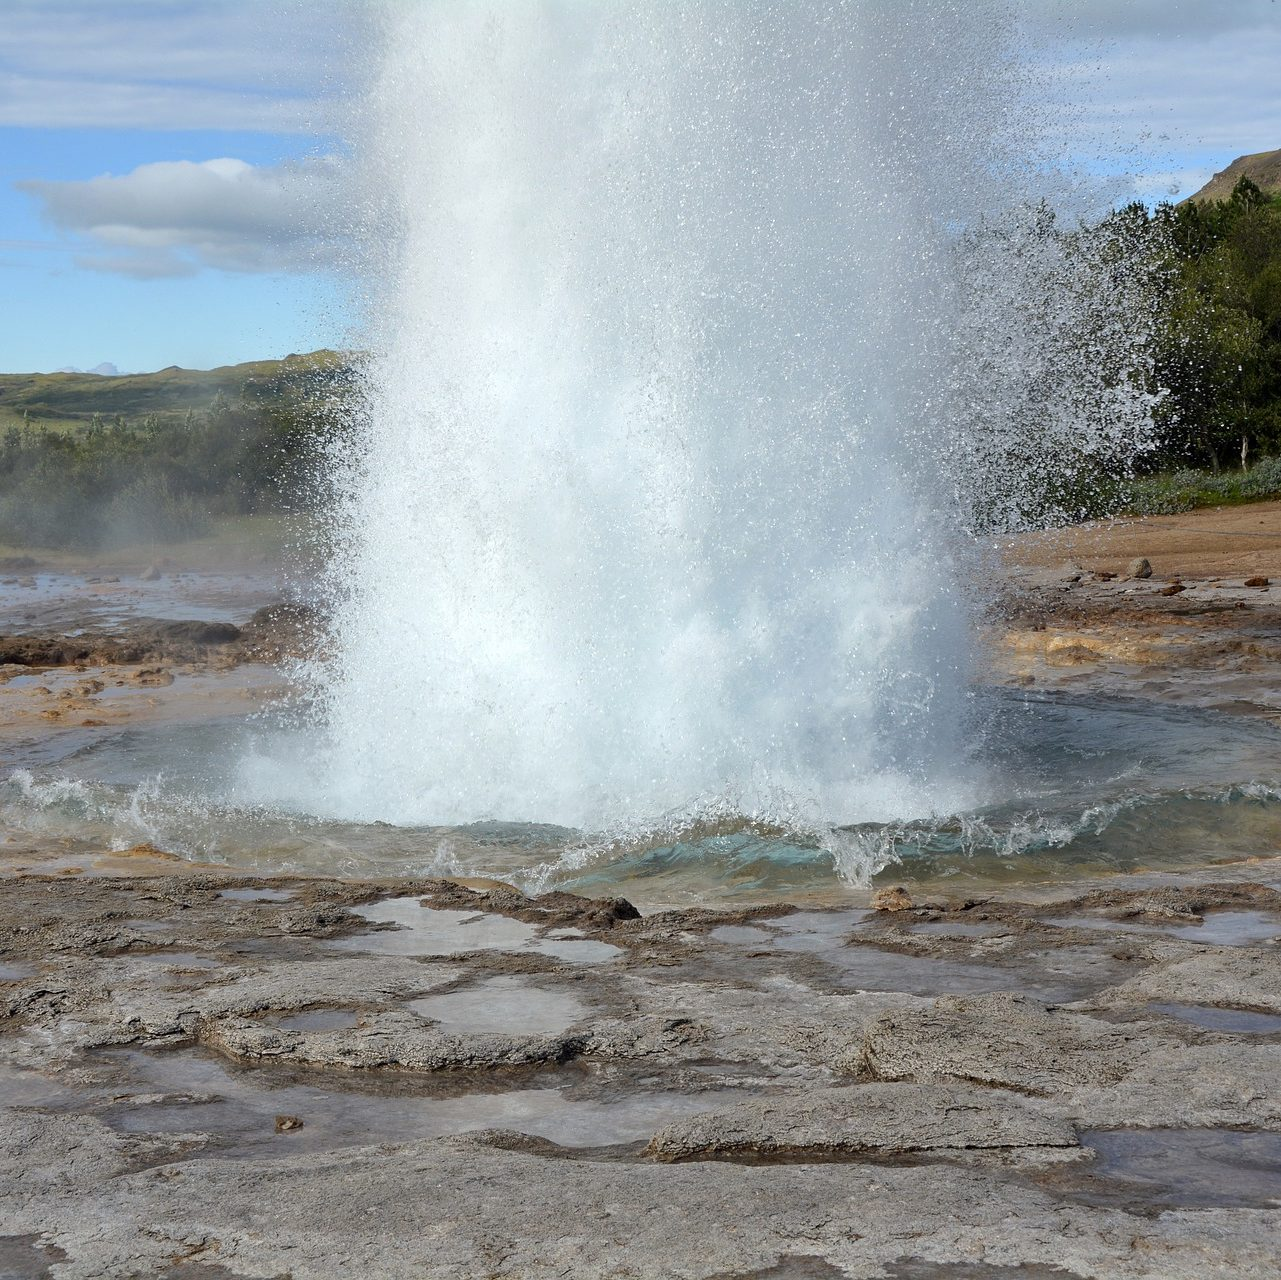 Geysir in Haukadalur, Golden Circle Tours